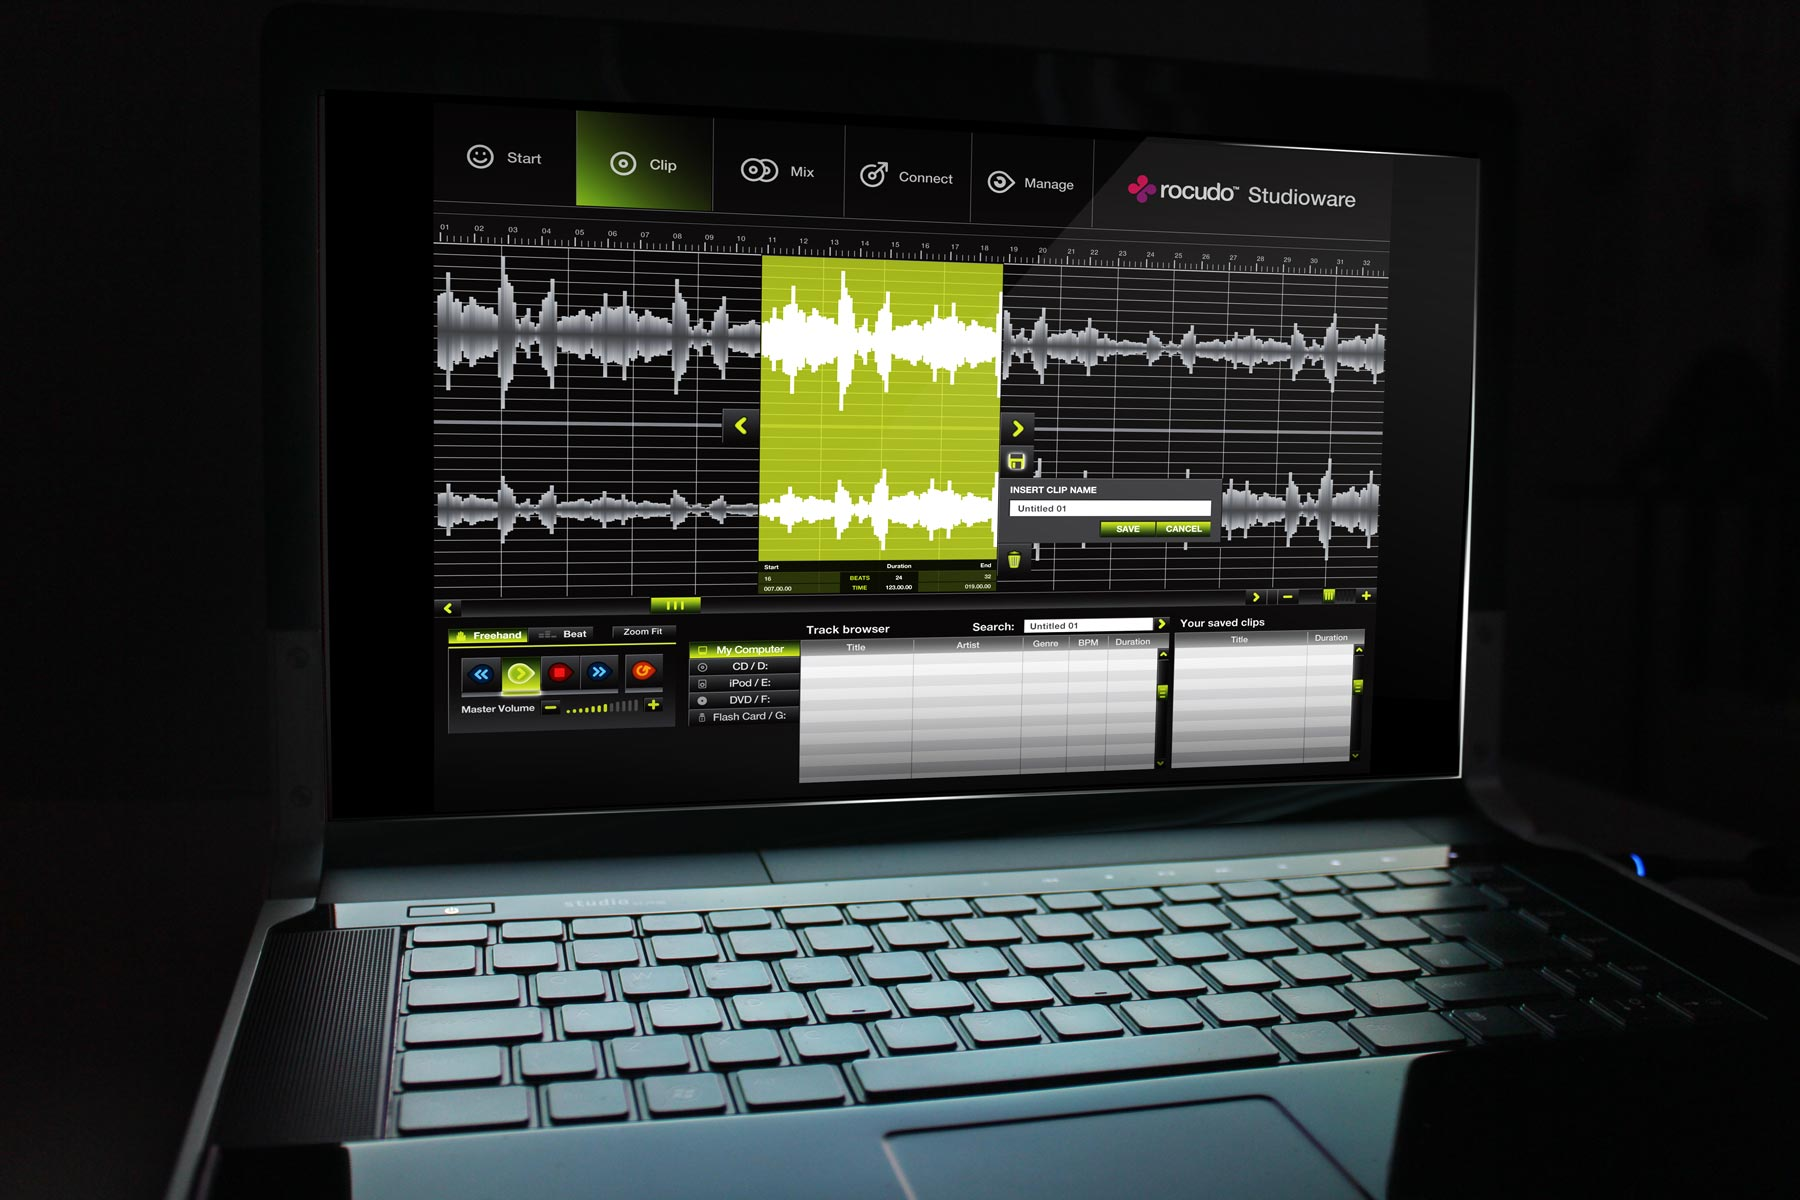 Firedog developed the full user interface for a number of screens within the software. Here, the user selects clips for the mix.